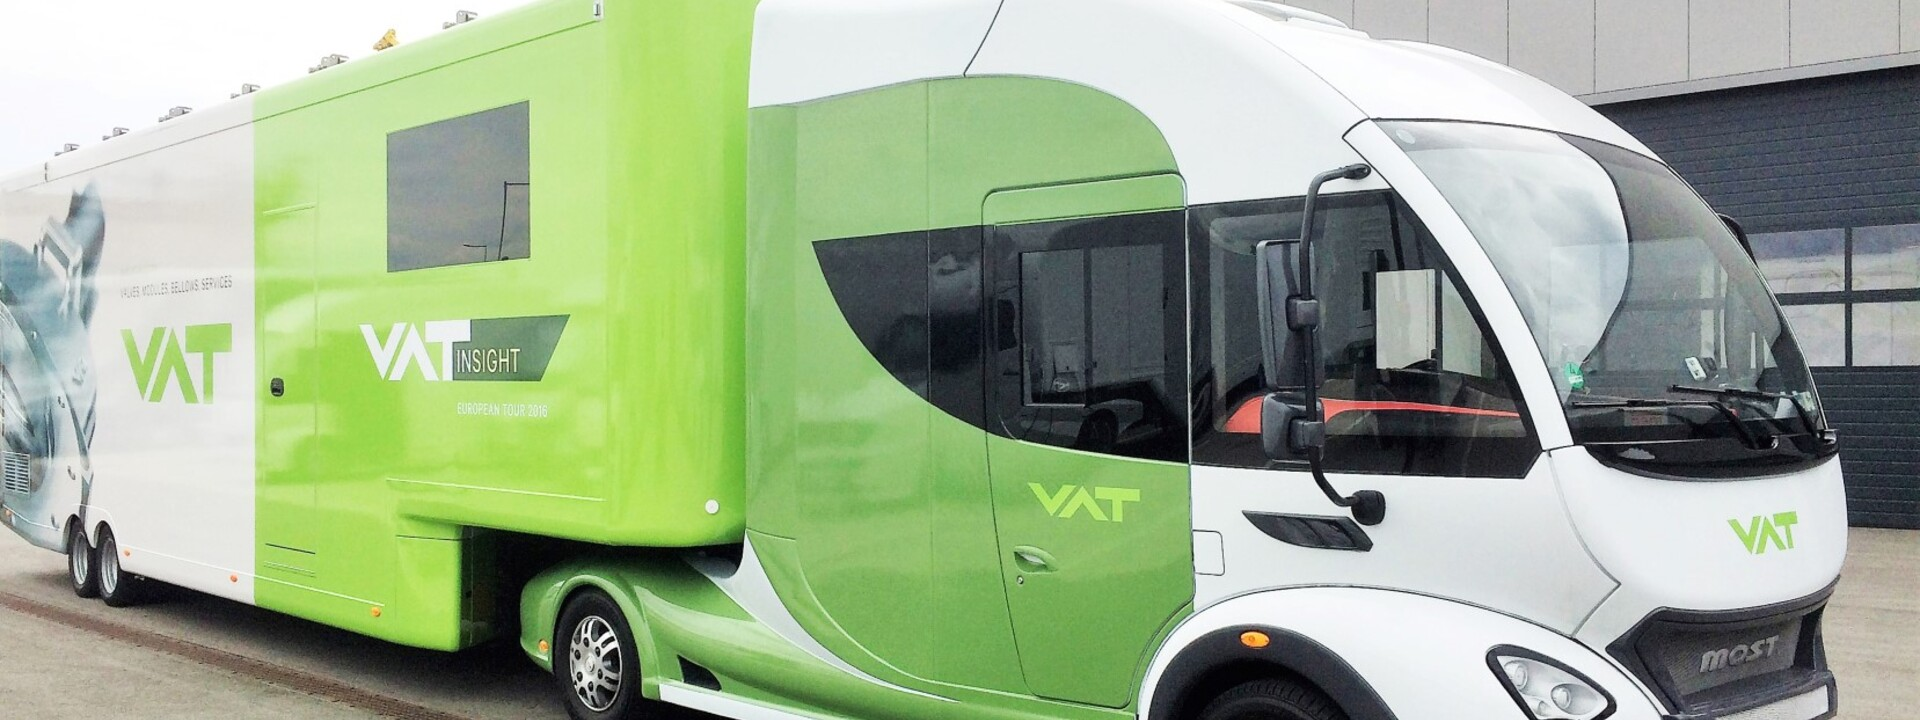 1-vat-showtruck-infomobil-futuria-mobile-messe.jpg